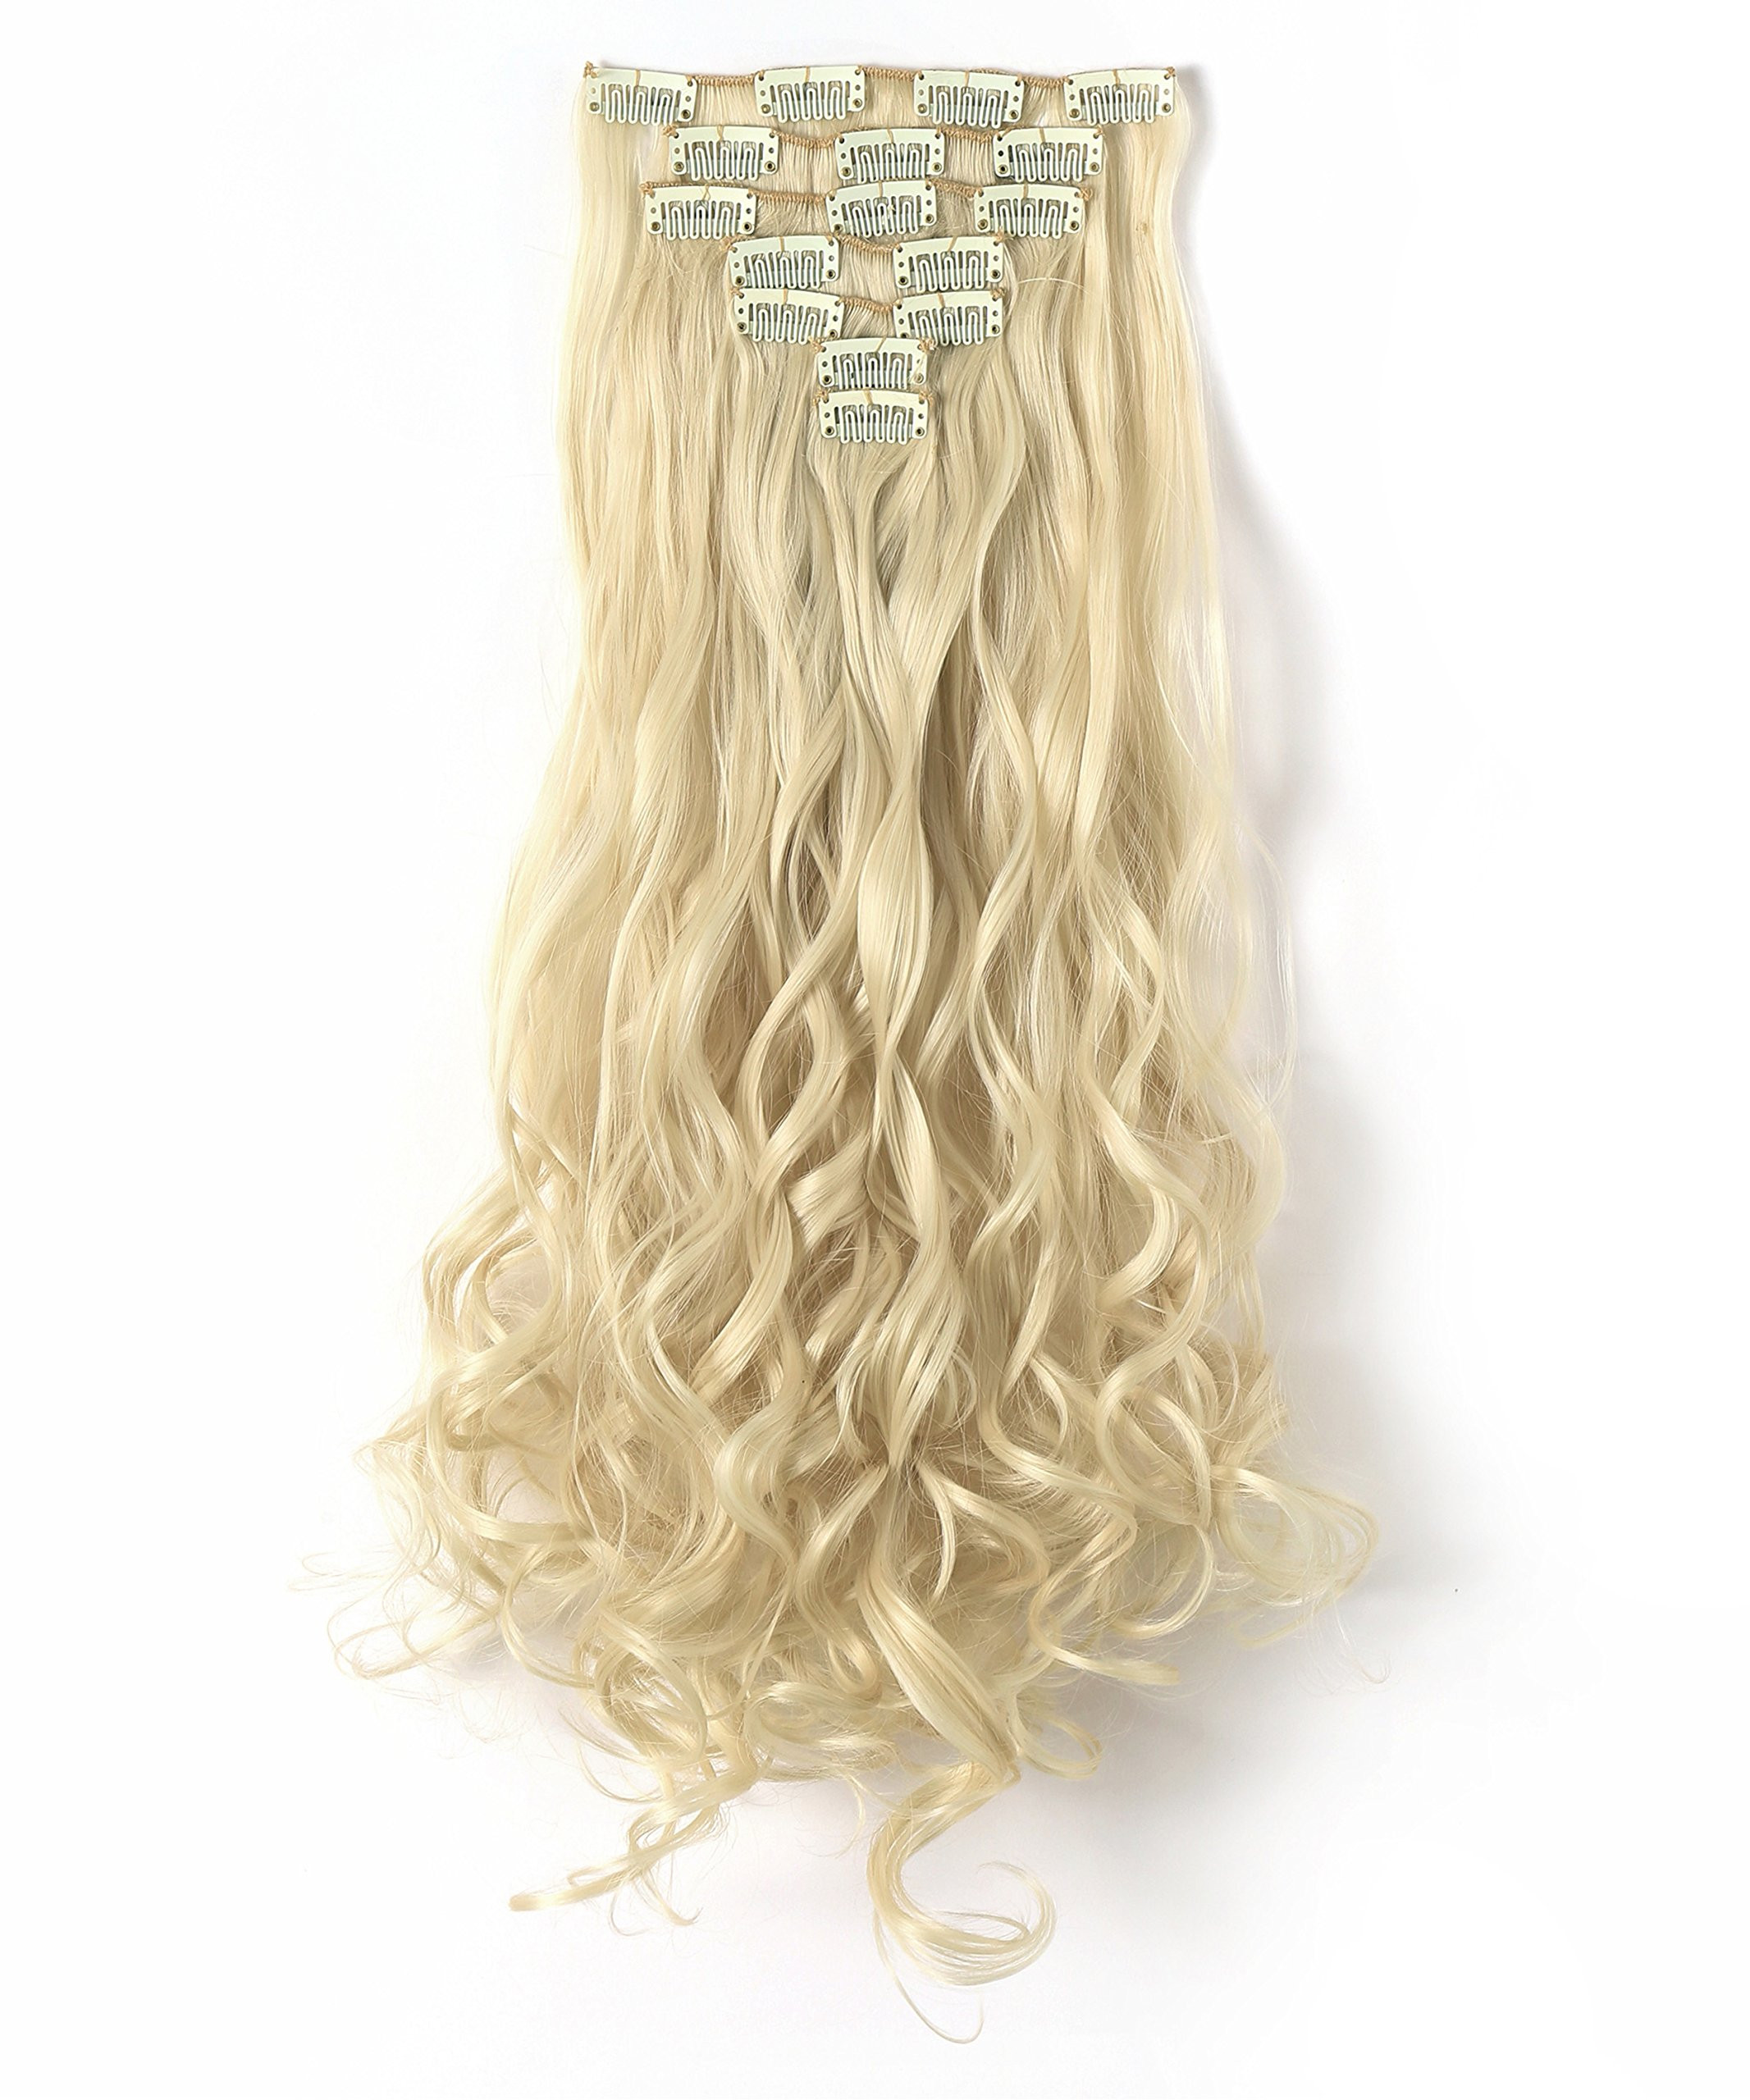 """OneDor 20"""" Curly Full Head Clip in Synthetic Hair Extensions 7pcs 140g (613#-Pre Bleach Blonde)"""